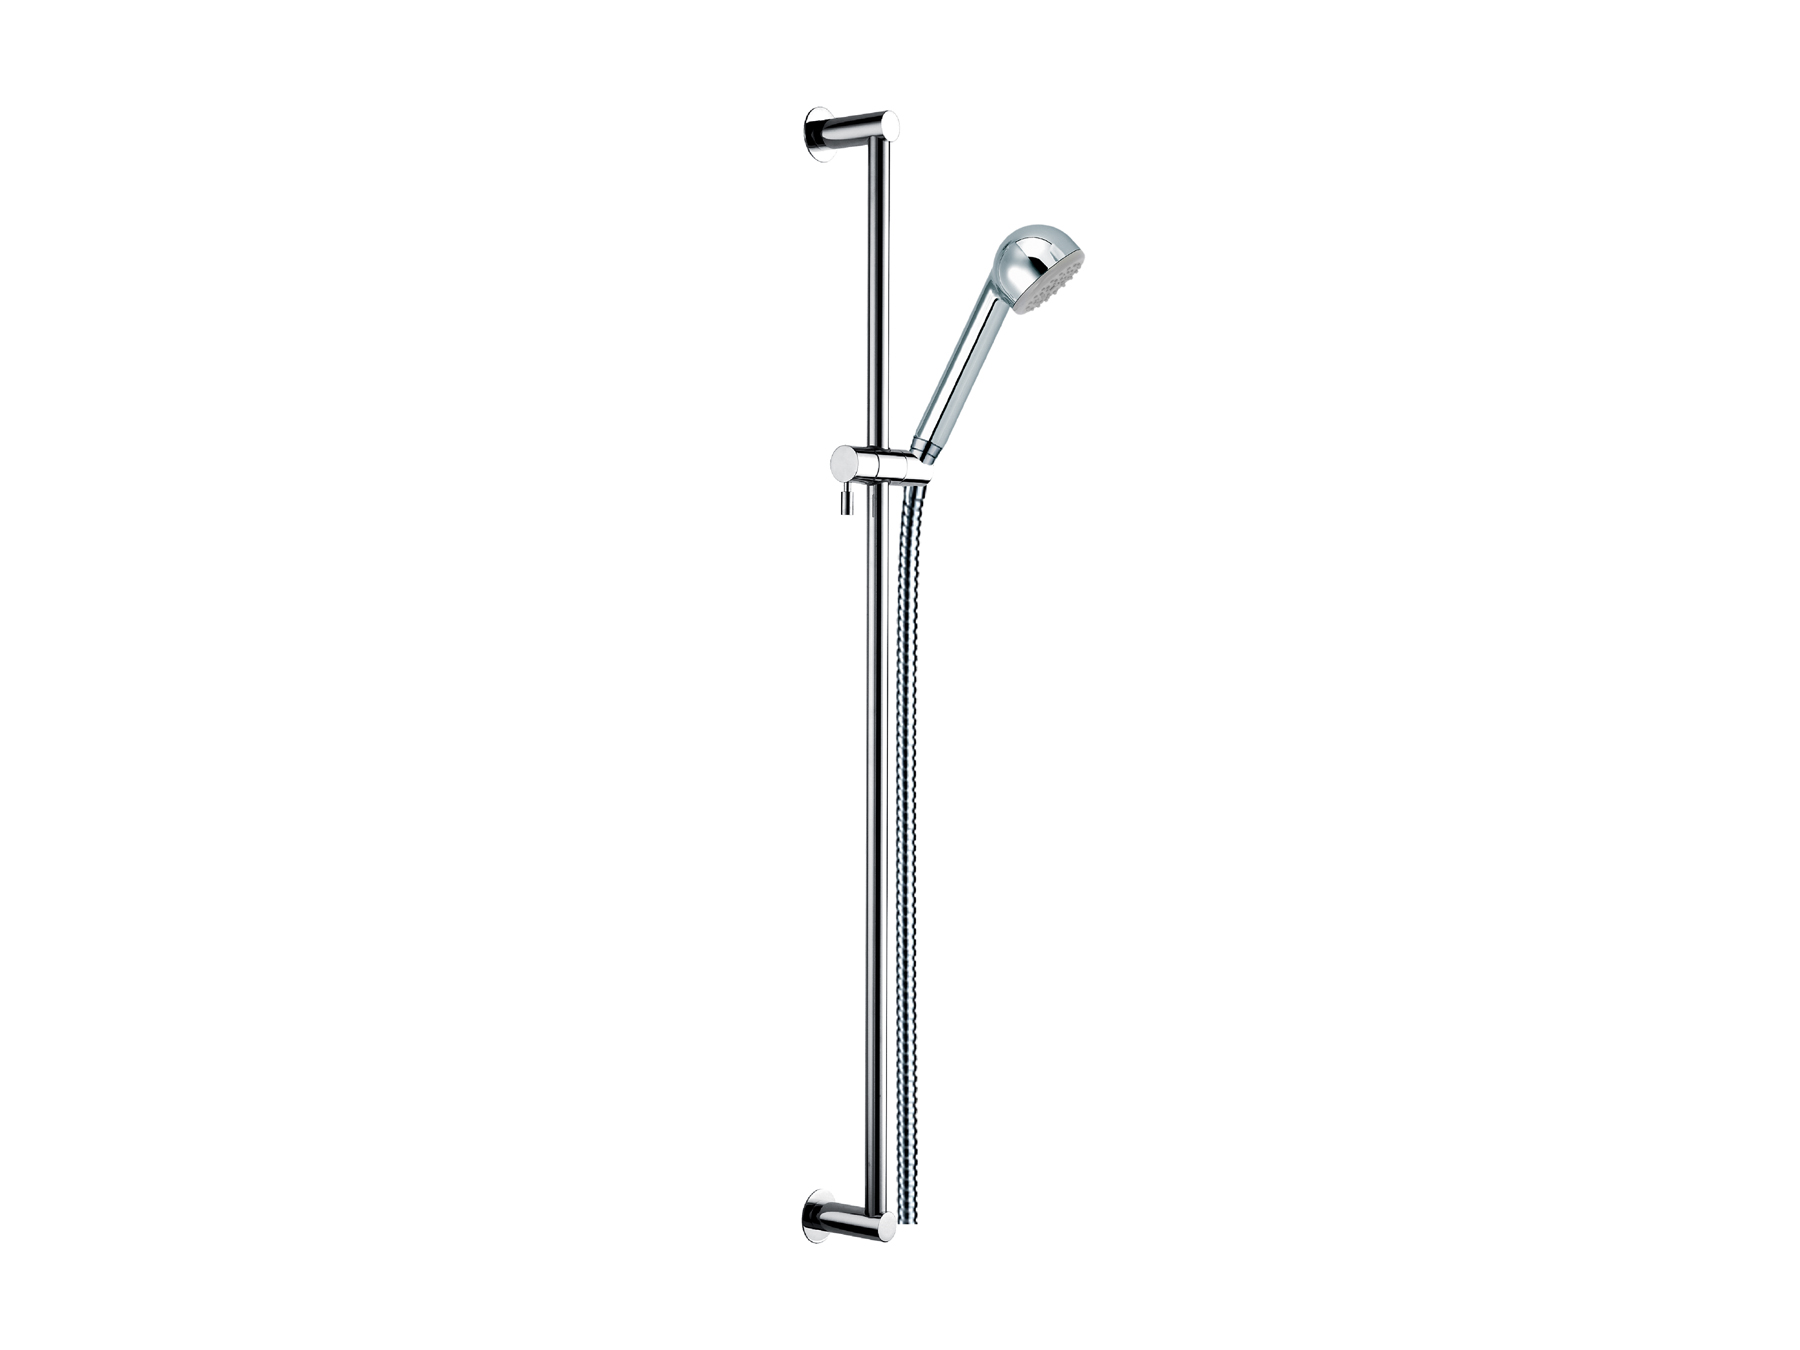 Shower arm and handshower 8020.--.04